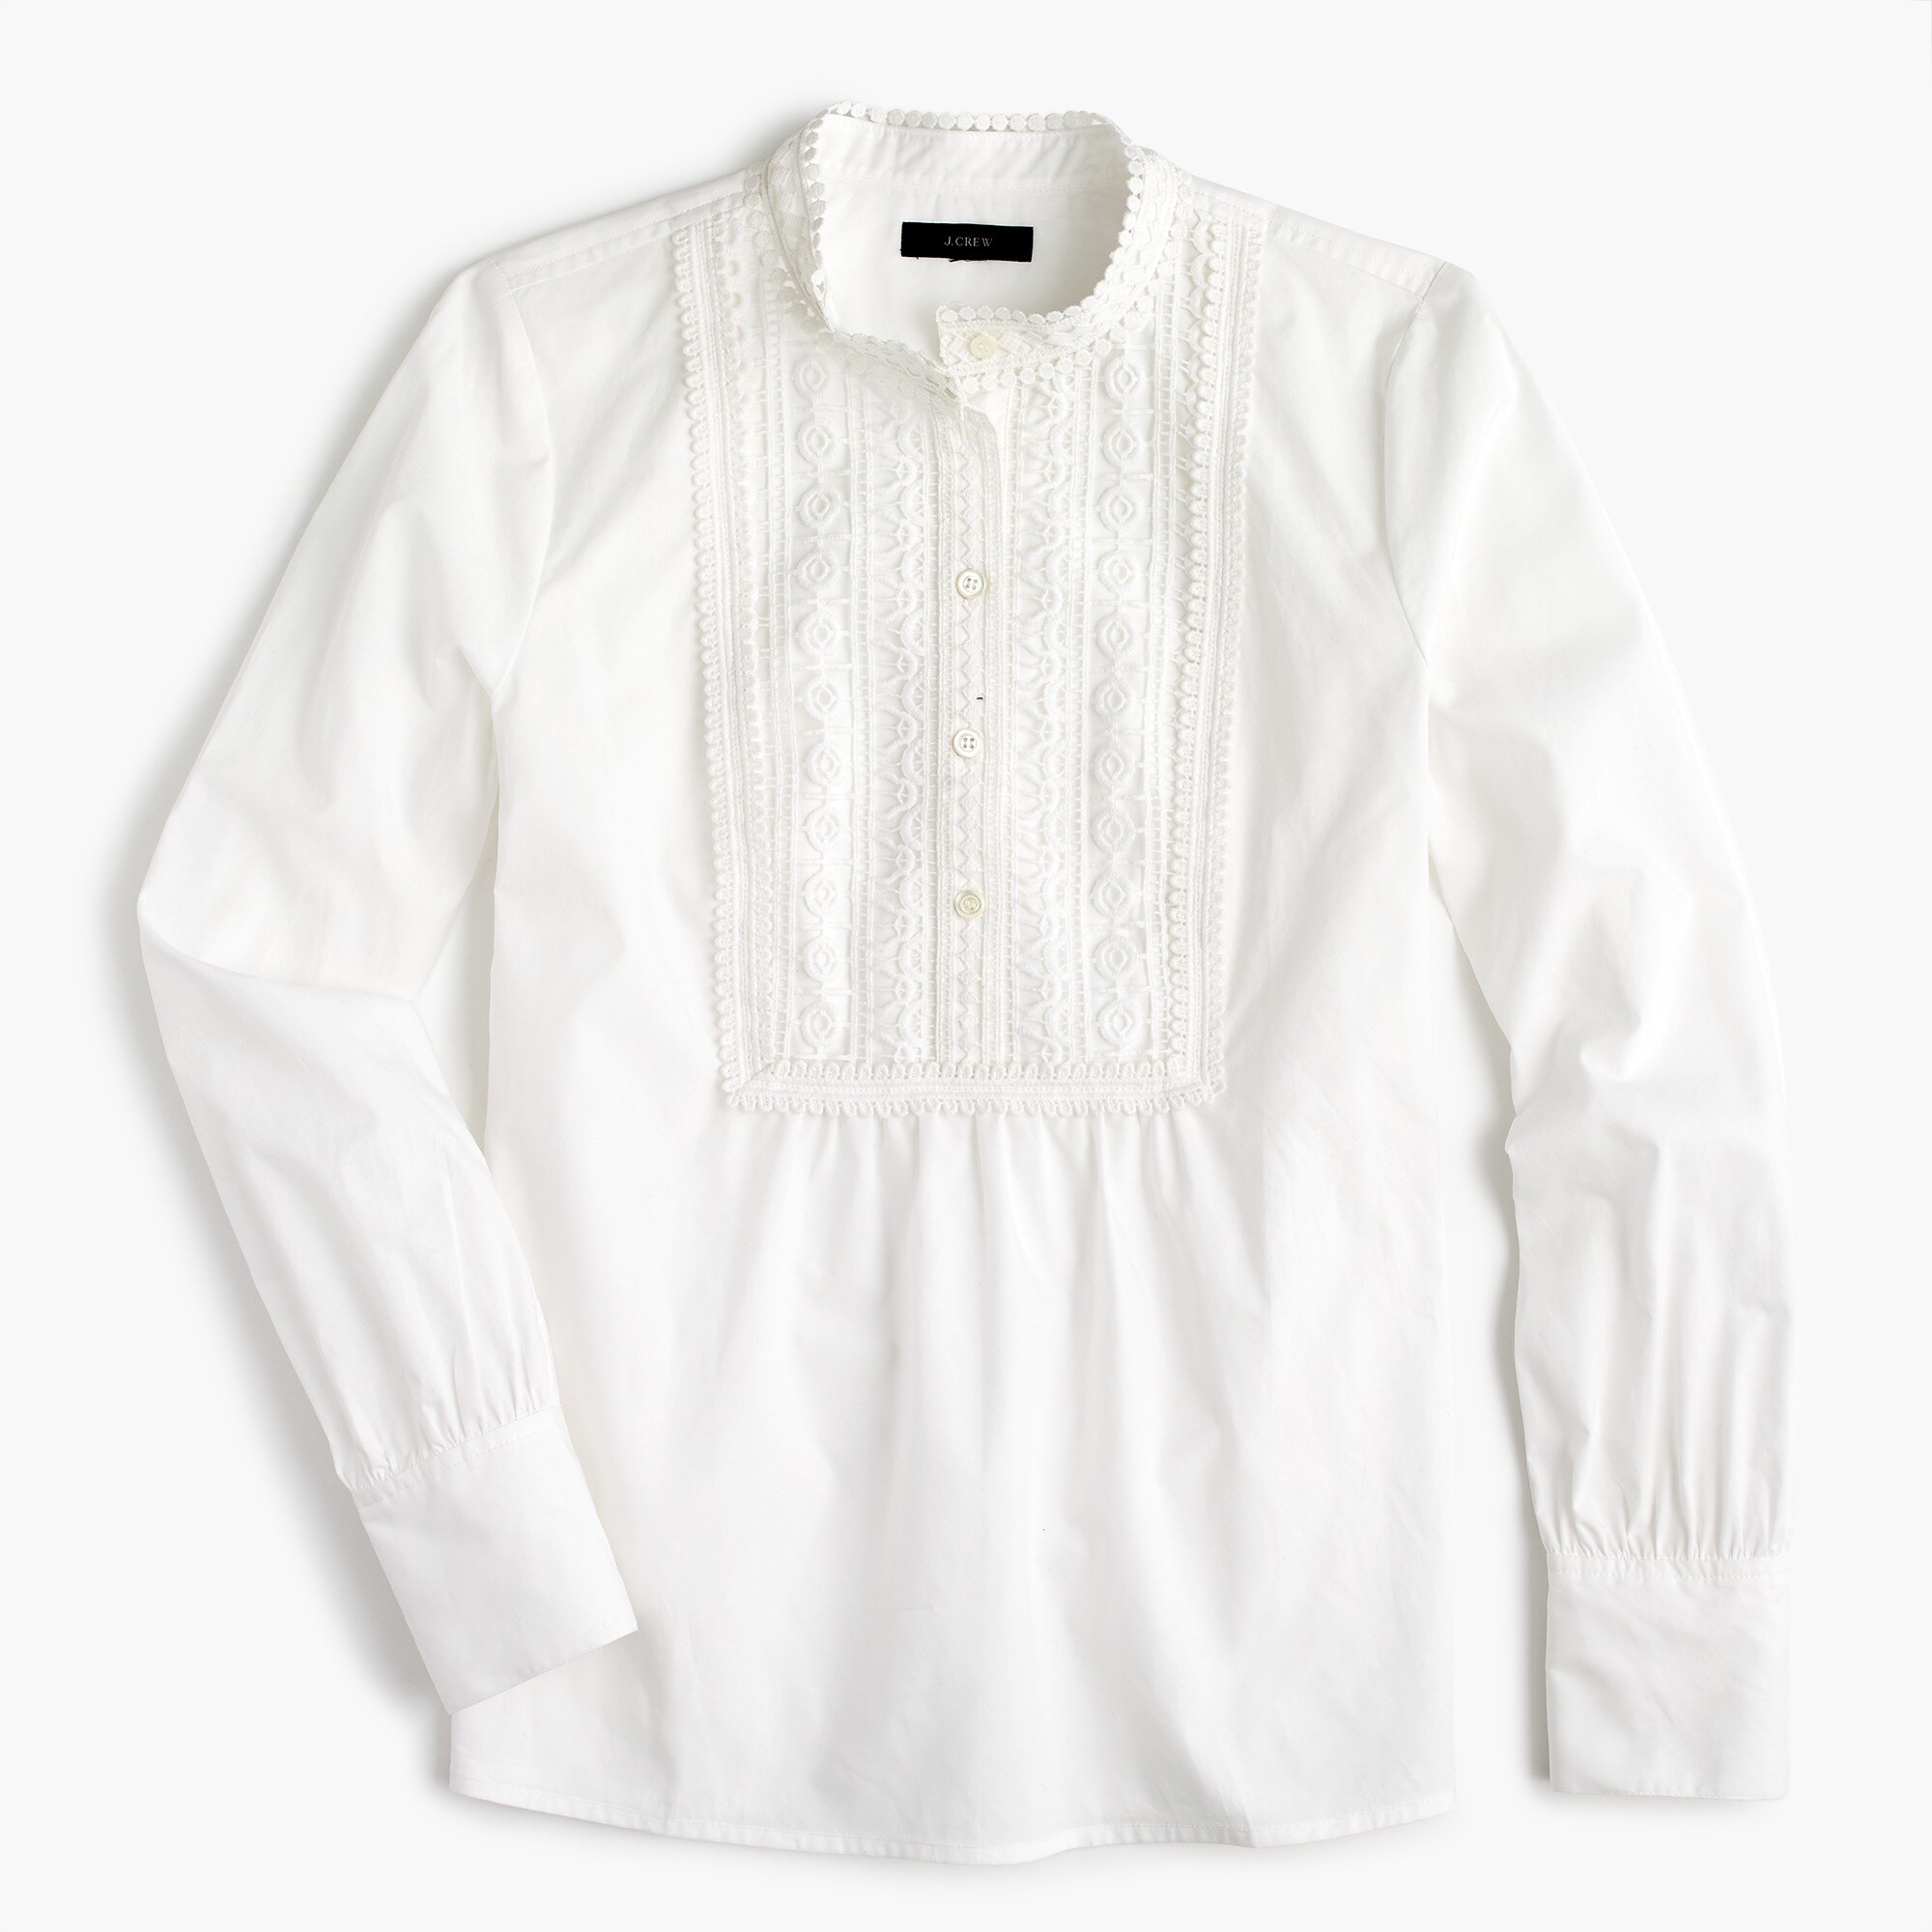 Image 2 for Petite Popover shirt with lace bib